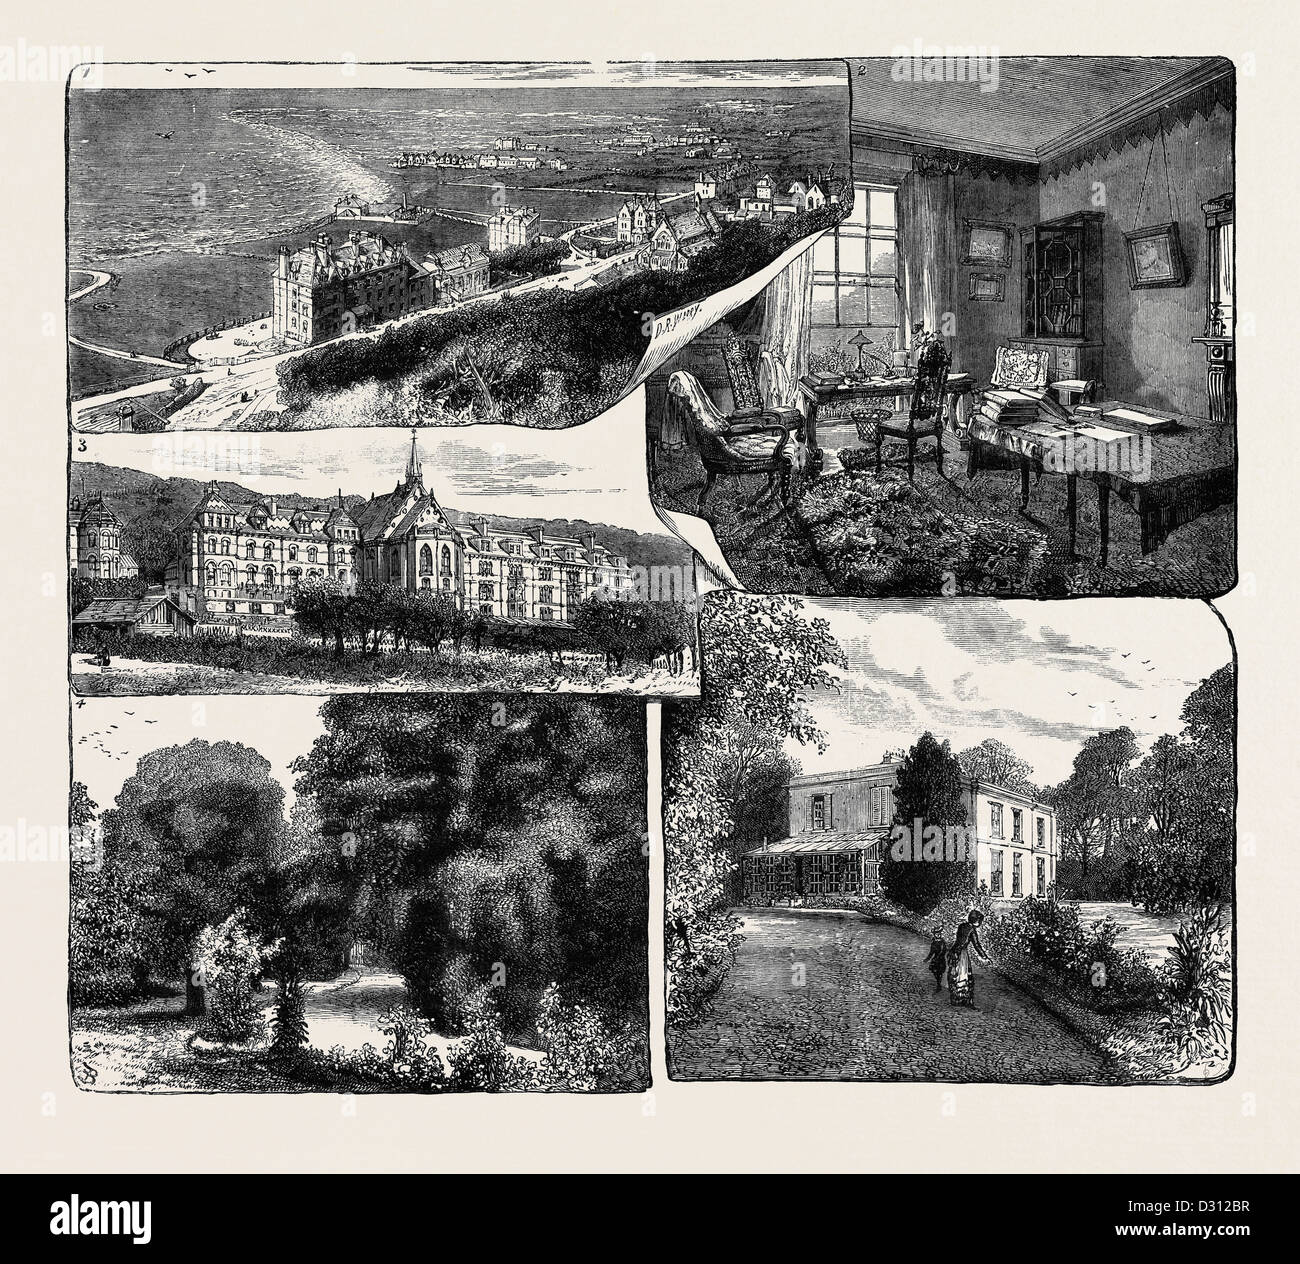 MEMORIES OF CHARLES KINGSLEY AT WESTWARD HO! DEVONSHIRE - Stock Image